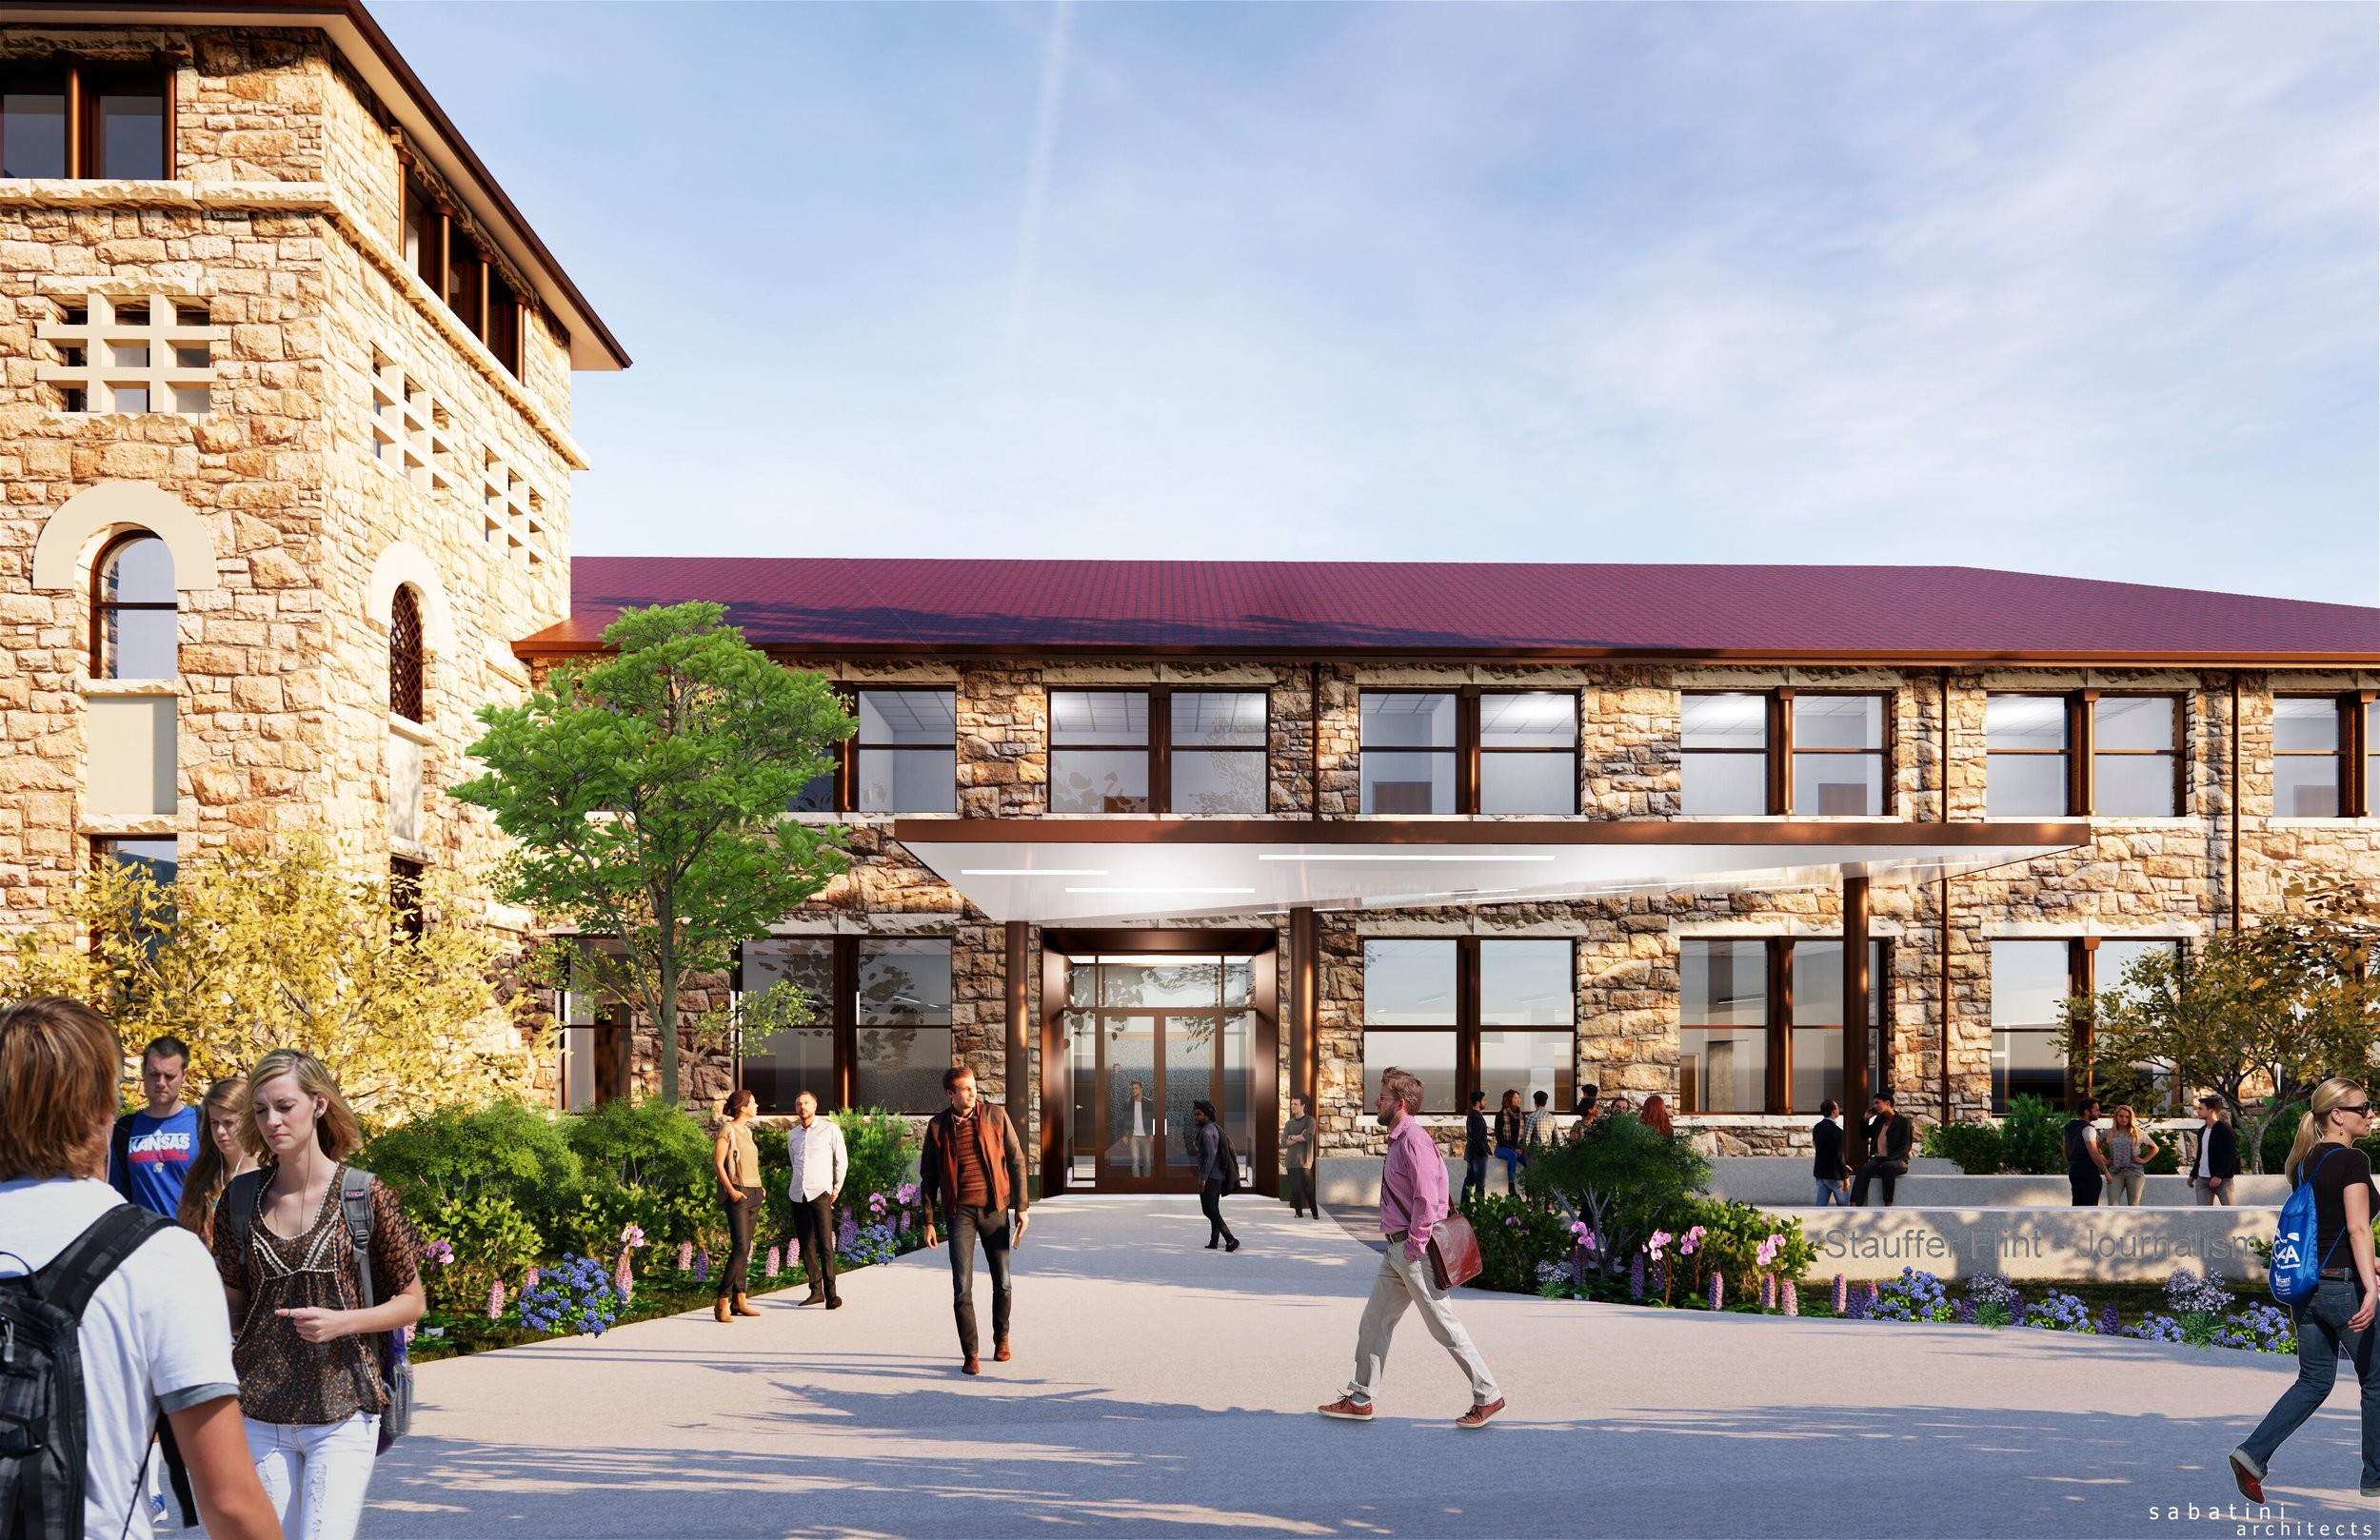 A new front door for Stauffer-Flint Hall and plaza facing Jayhawk Boulevard will be unveiled in spring 2020.